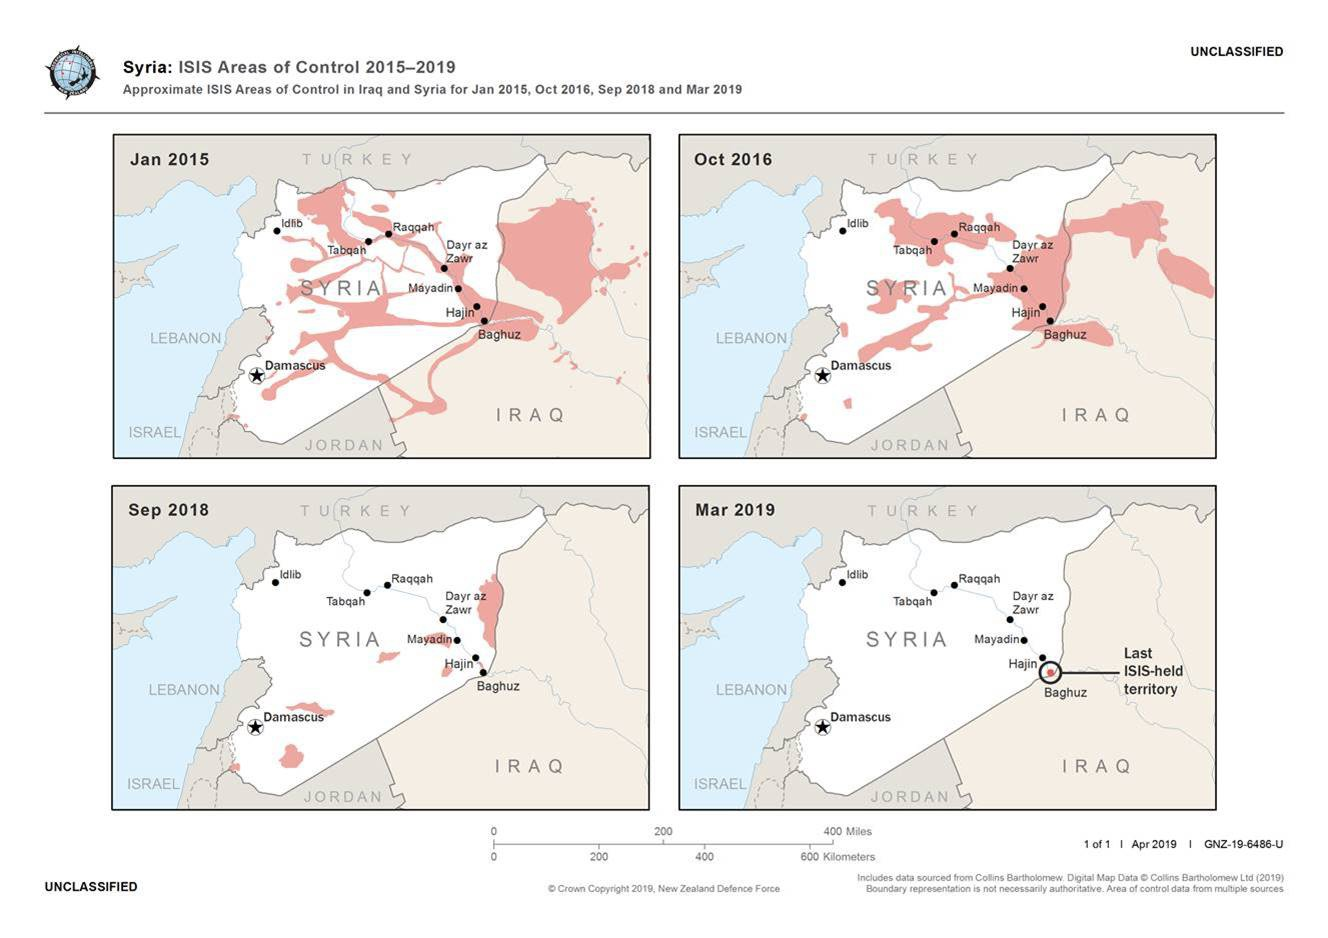 maps showing variation in IS control of Syria, restricted to only Baghuz in March 2019